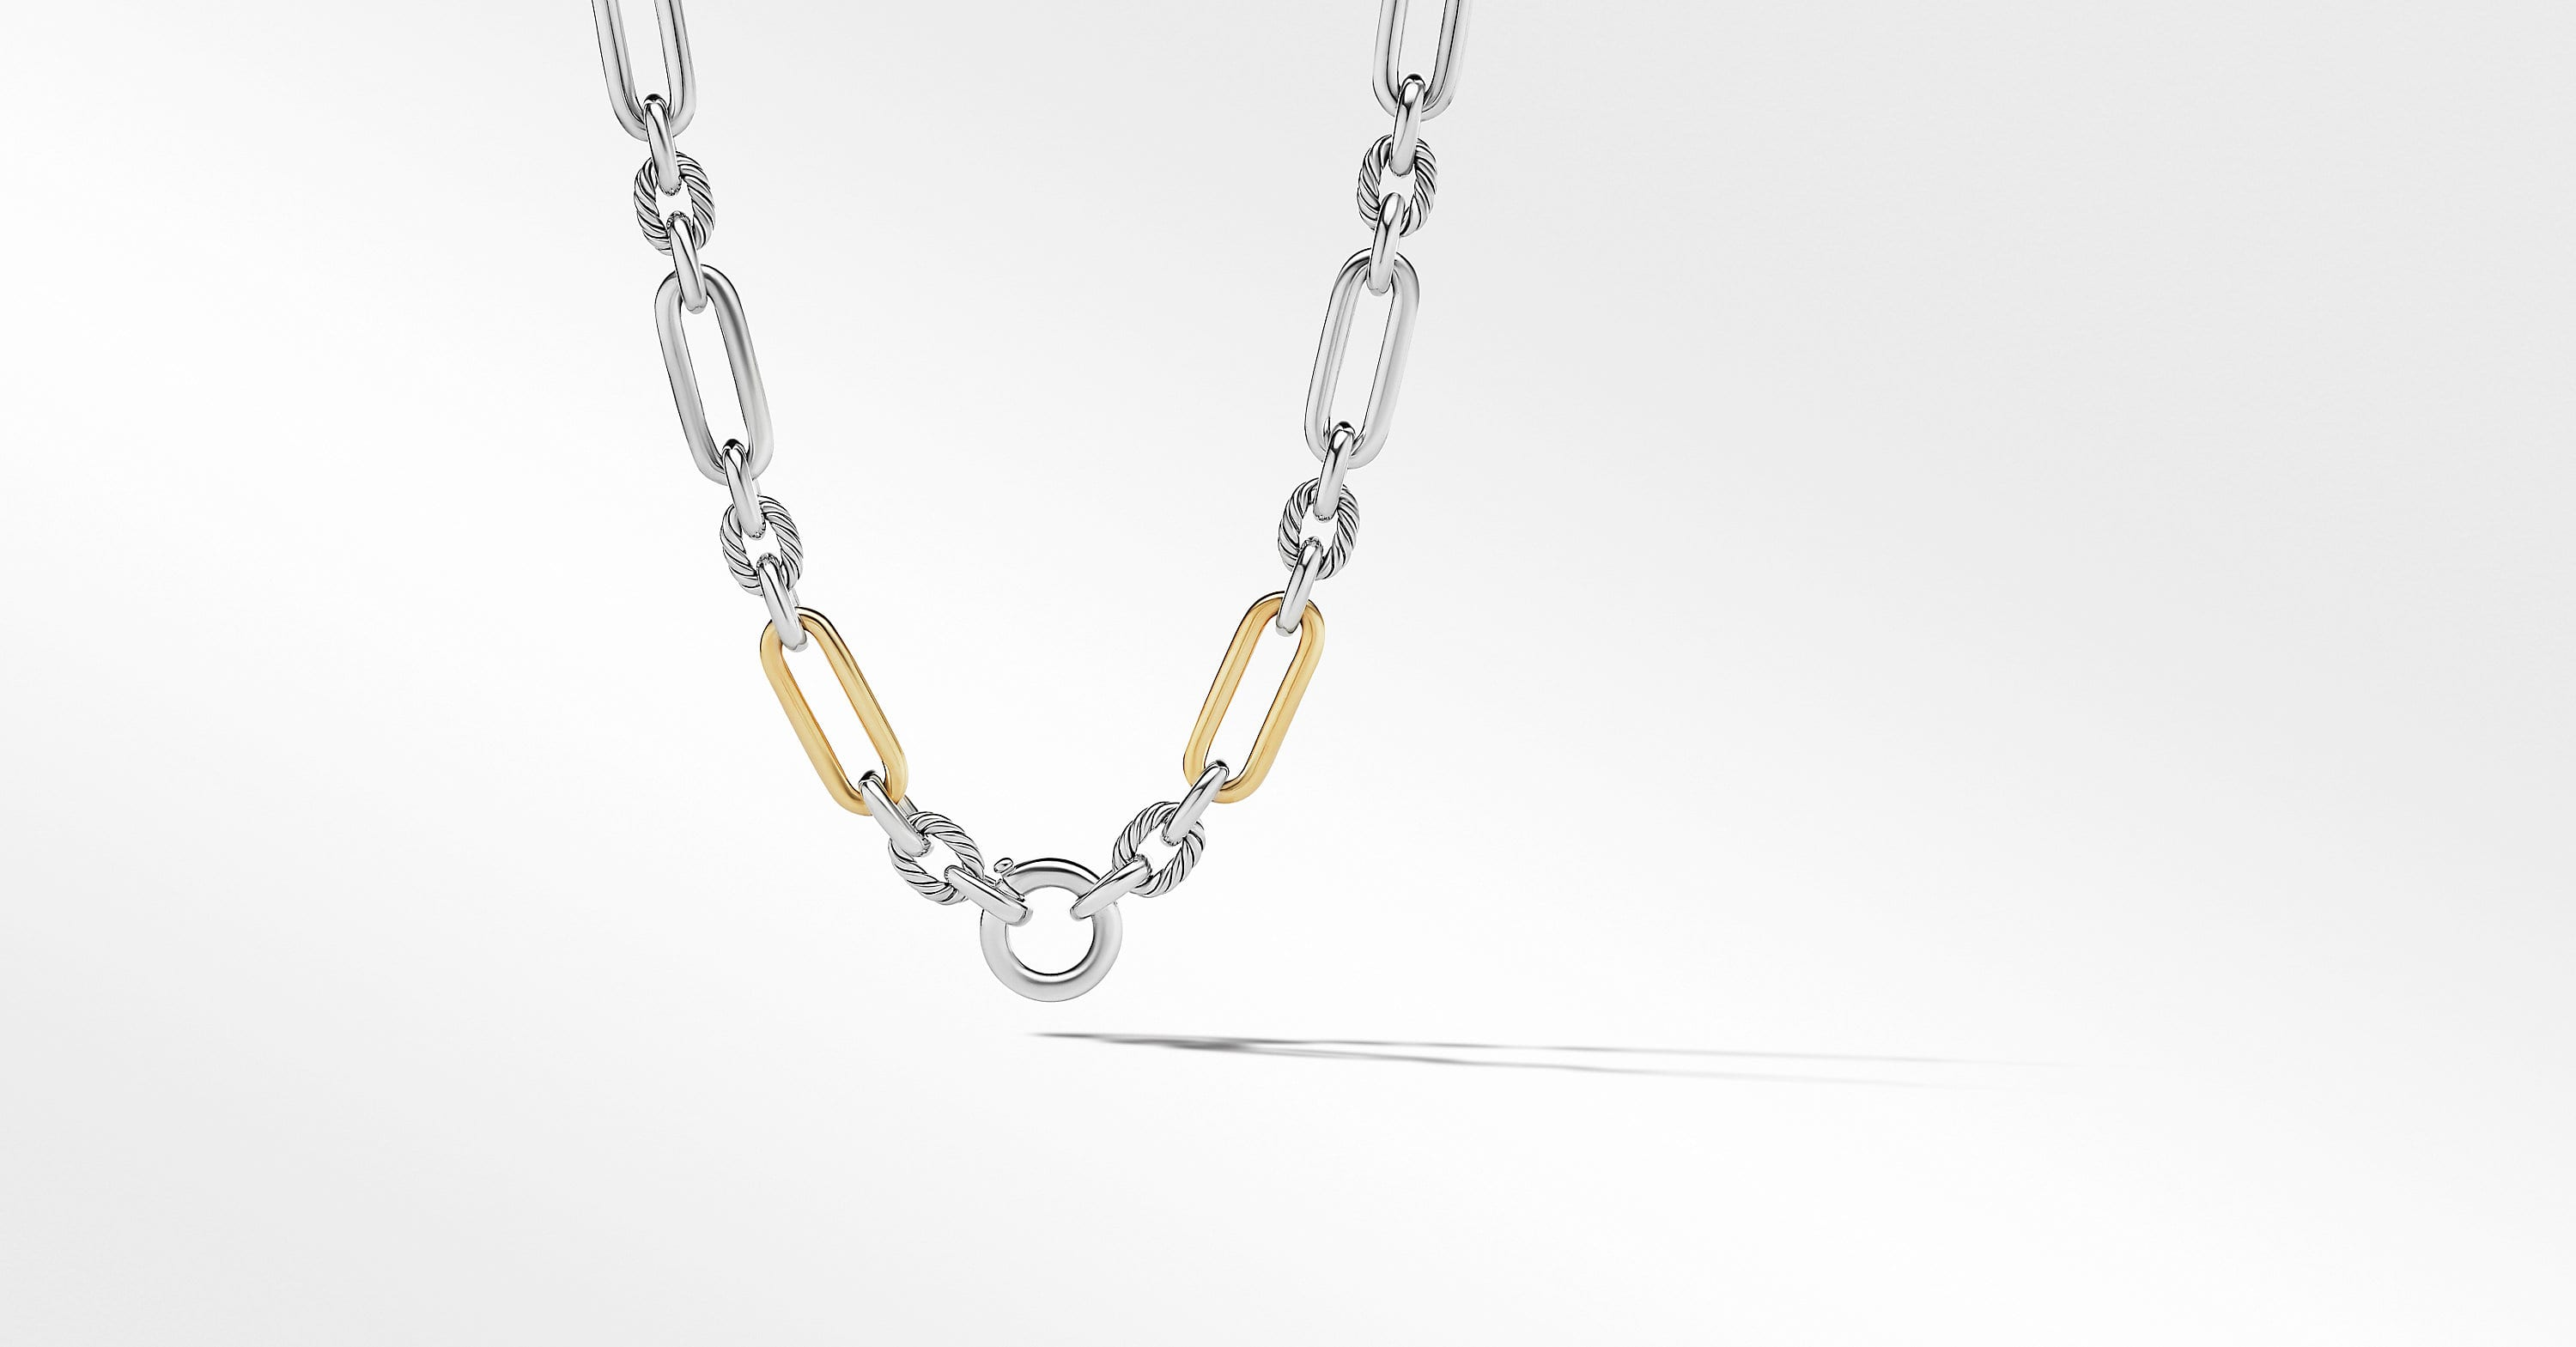 Lexington Chain with 18K Yellow Gold, 9.8mm